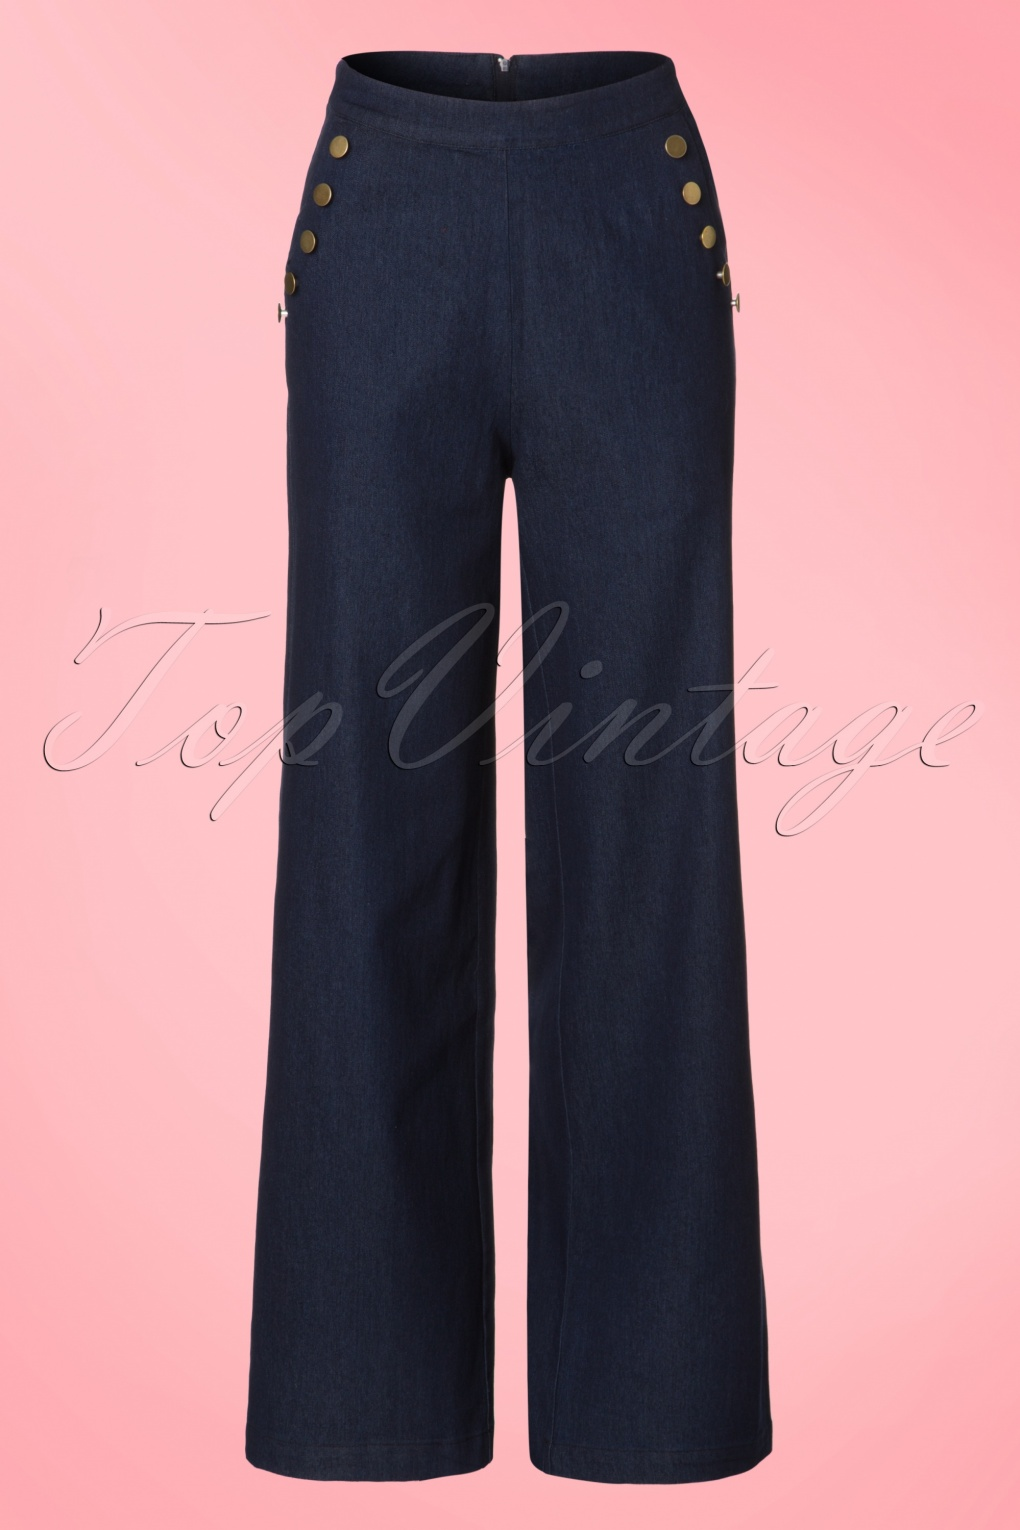 1940s Style Pants & Overalls- Wide Leg, High Waist 40s Samantha Trousers in Denim Blue £53.05 AT vintagedancer.com